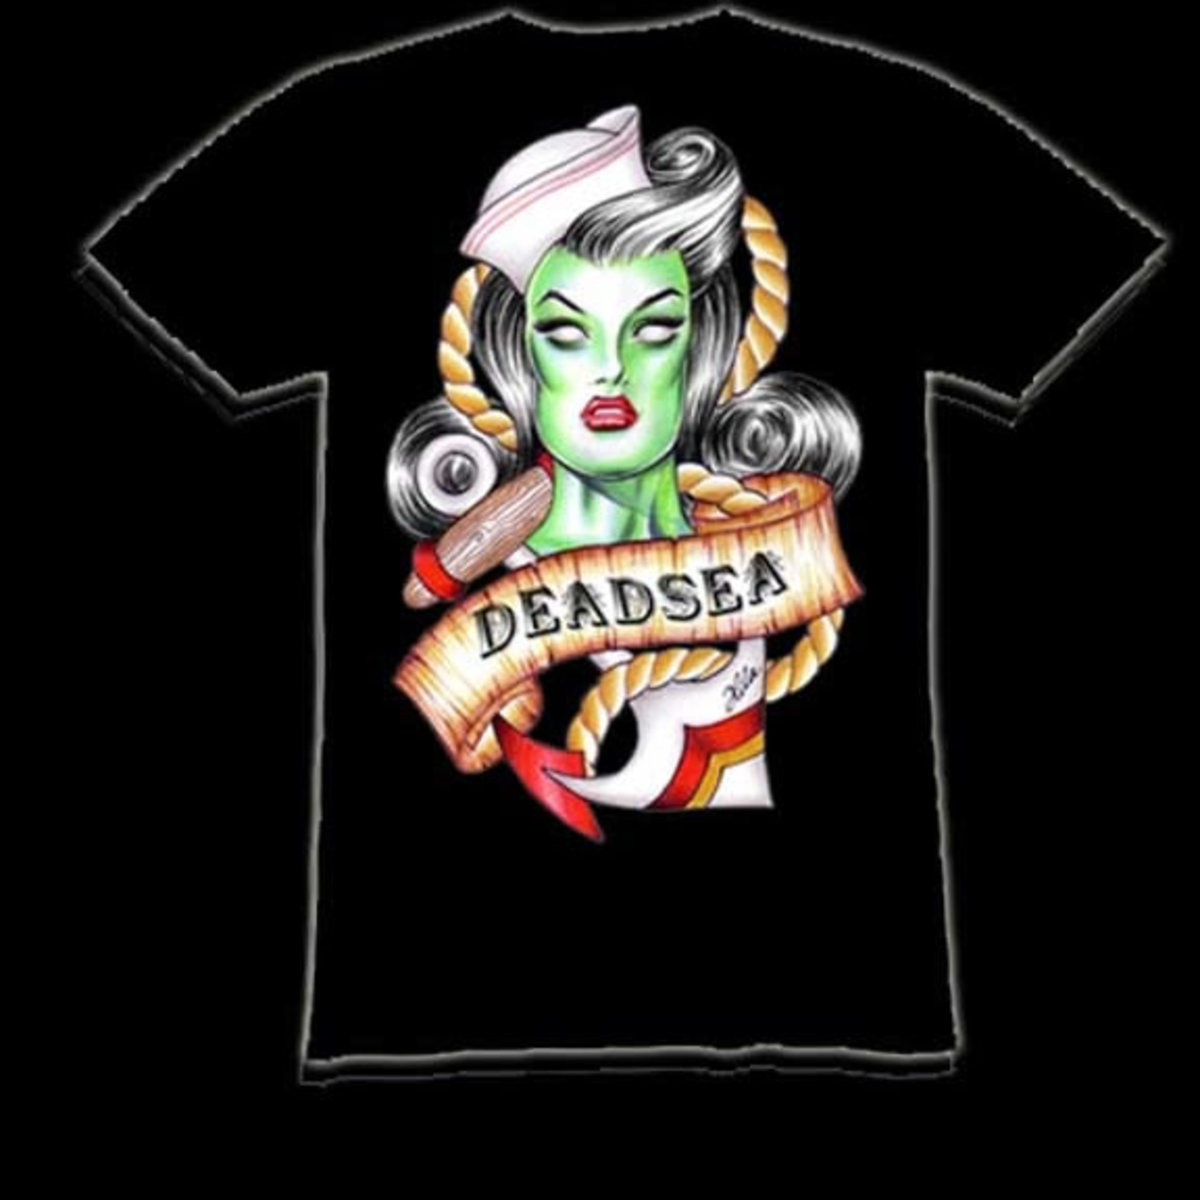 Hilary Jane Deadsea Tshirt on infectiousthreads.com.